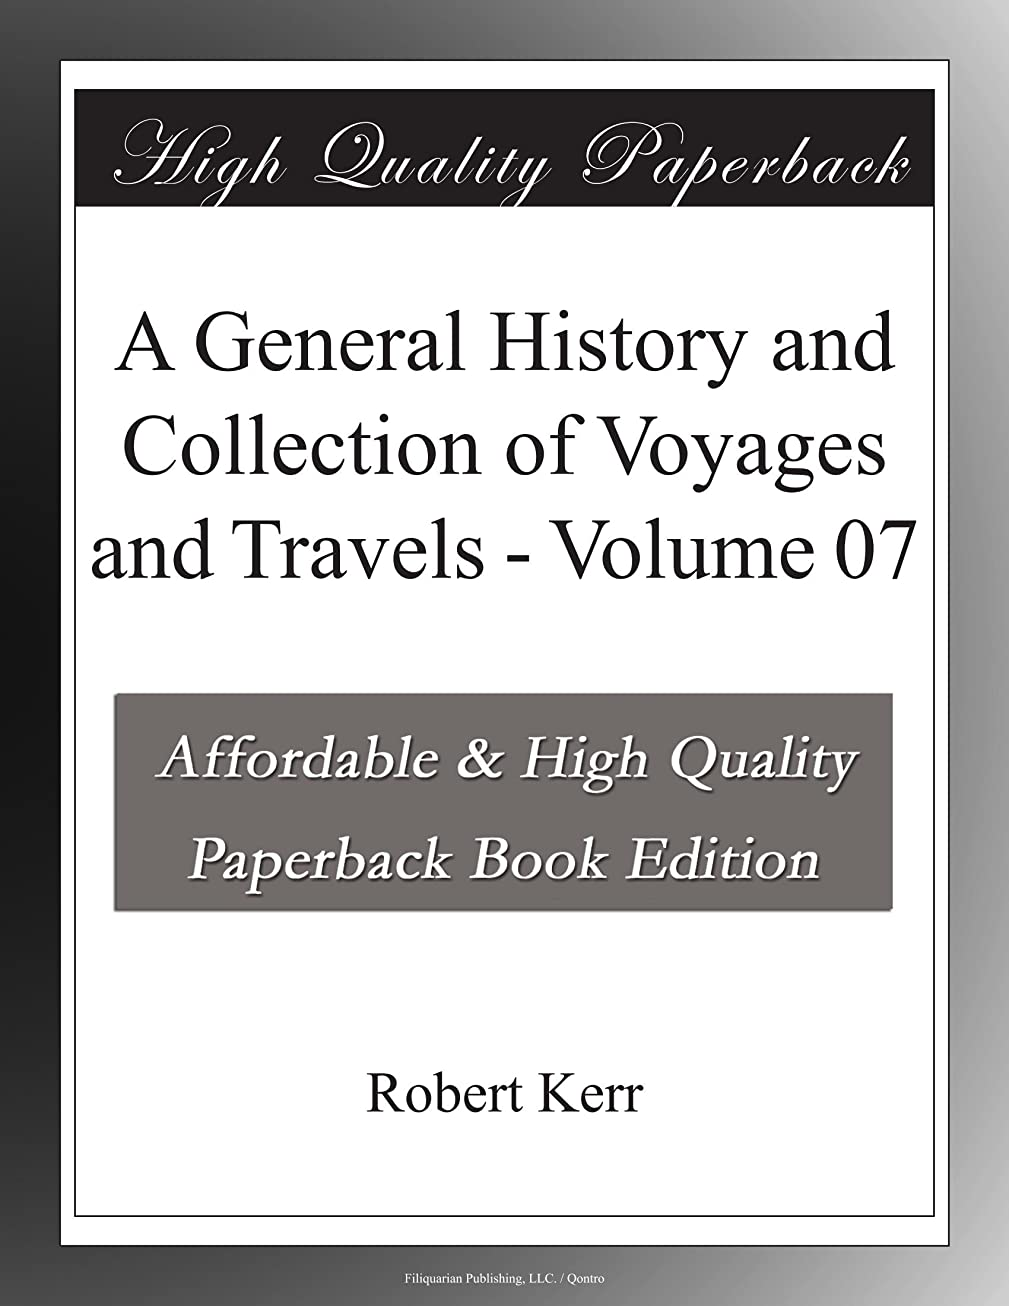 A General History and Collection of Voyages and Travels - Volume 07